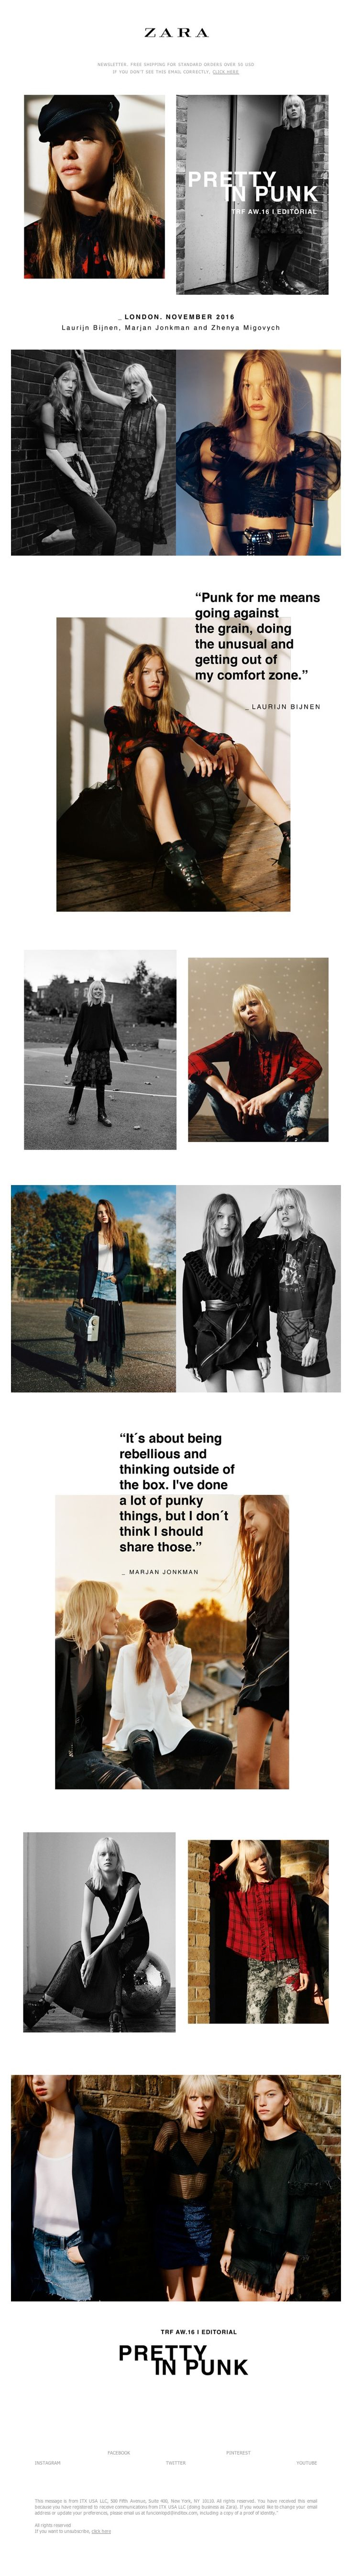 ZARA - PRETTY IN PUNK | New TRF editorial